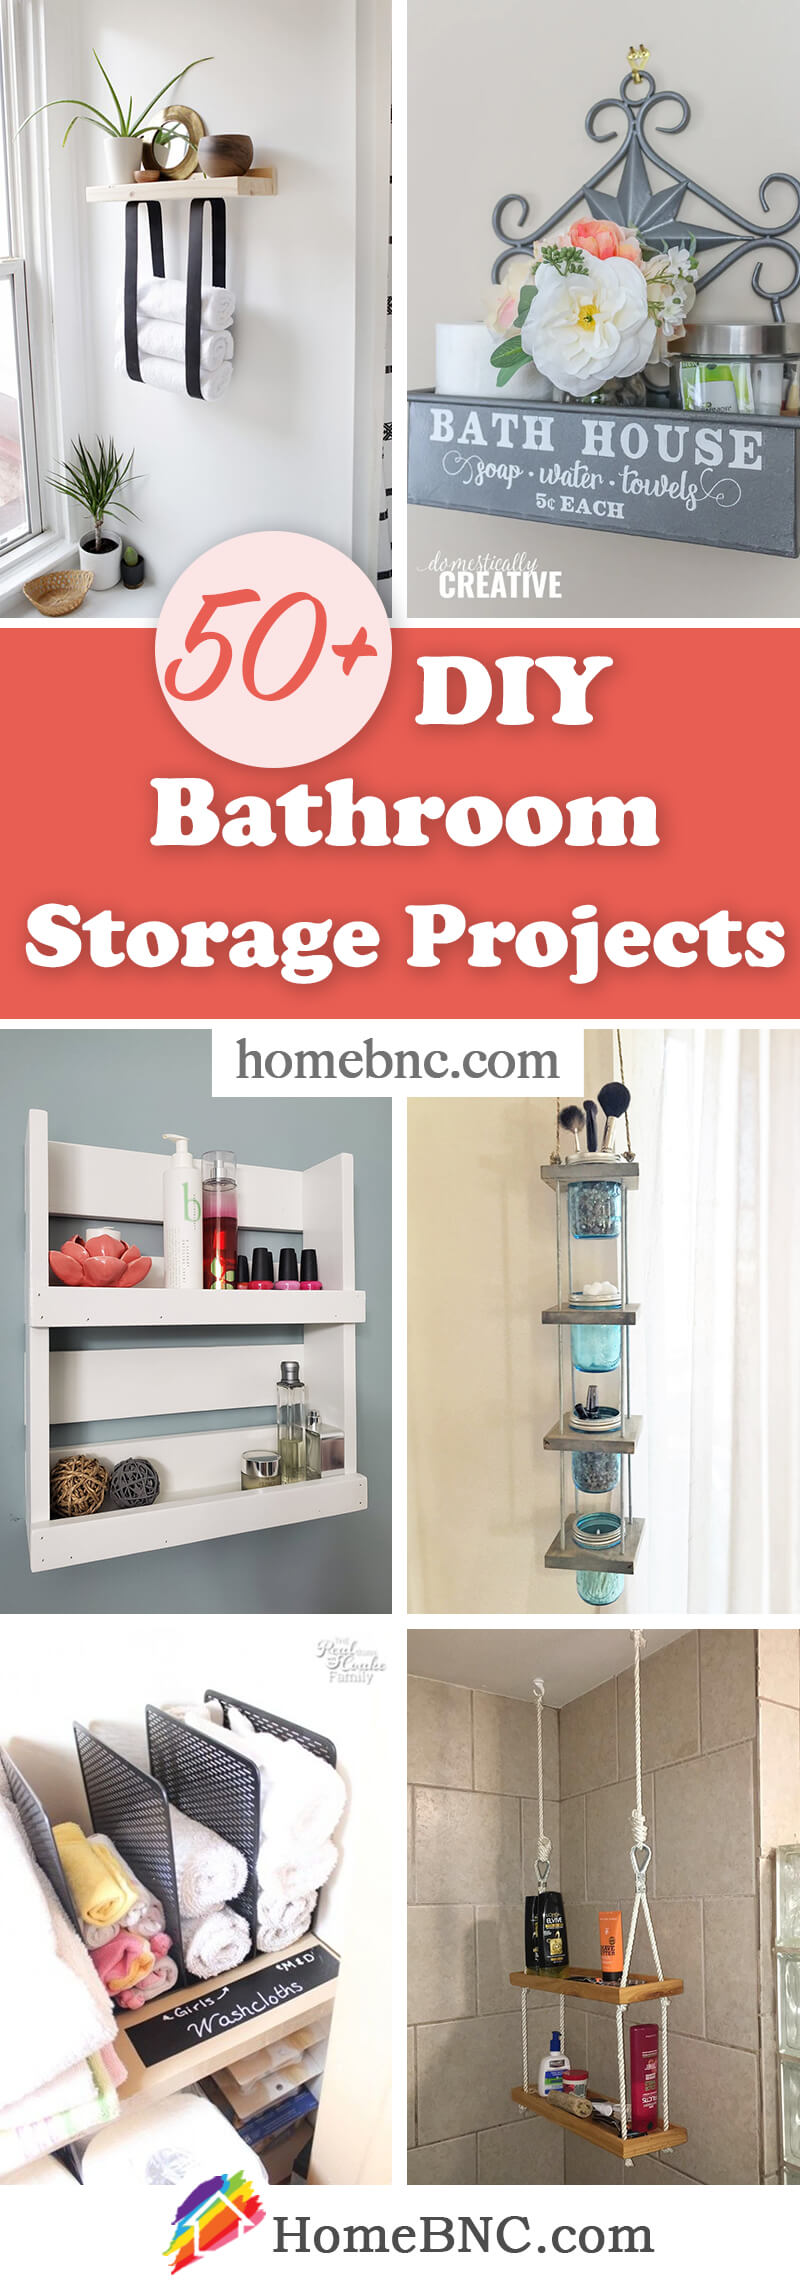 DIY Bathroom Storage Projects